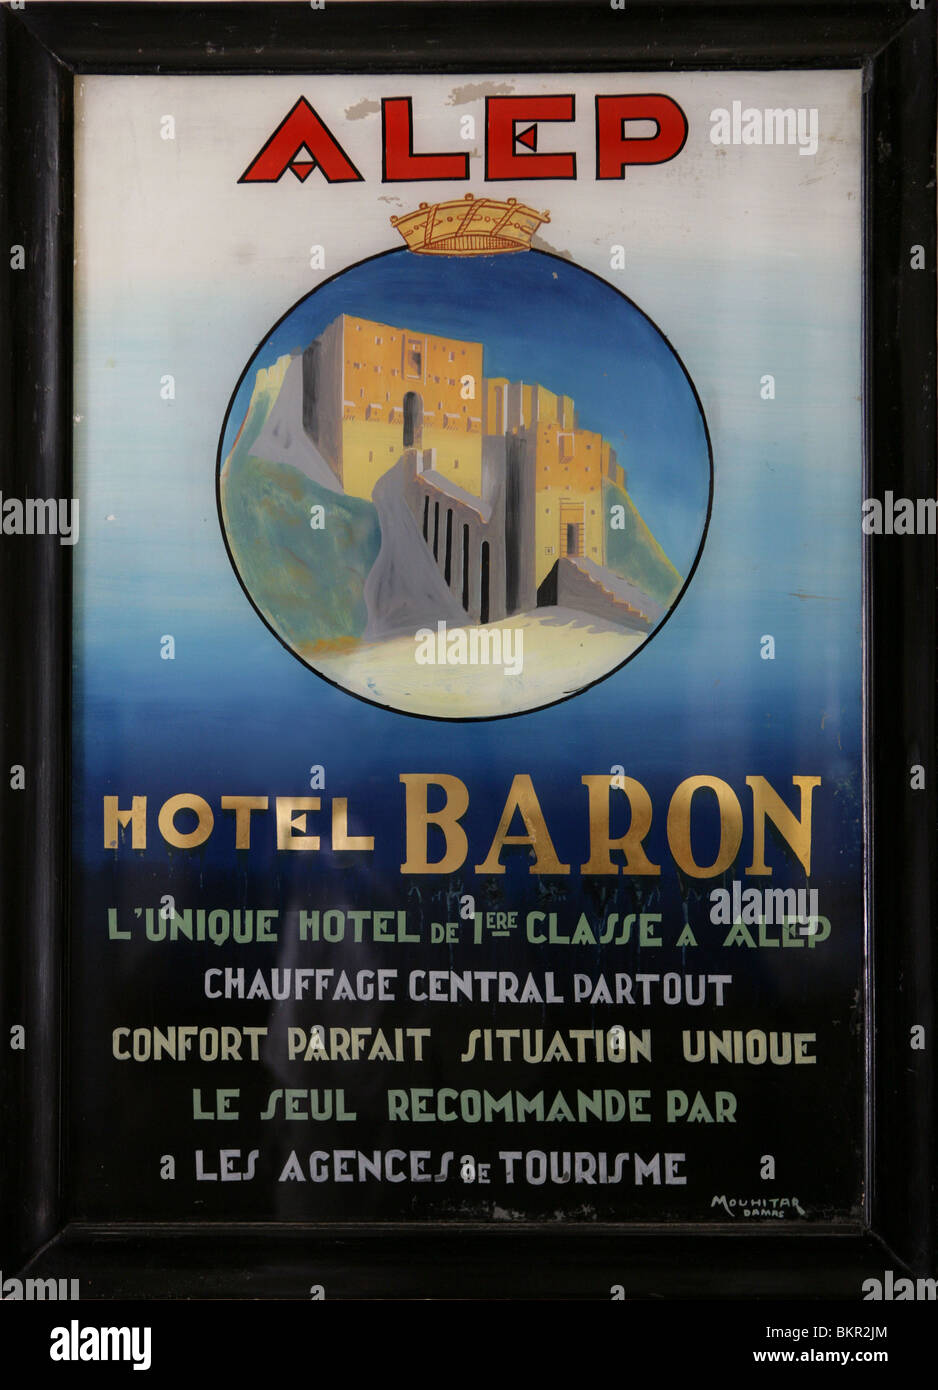 Old poster hanging in hall, Baron Hotel, early 20th century, Aleppo, Syria - Stock Image